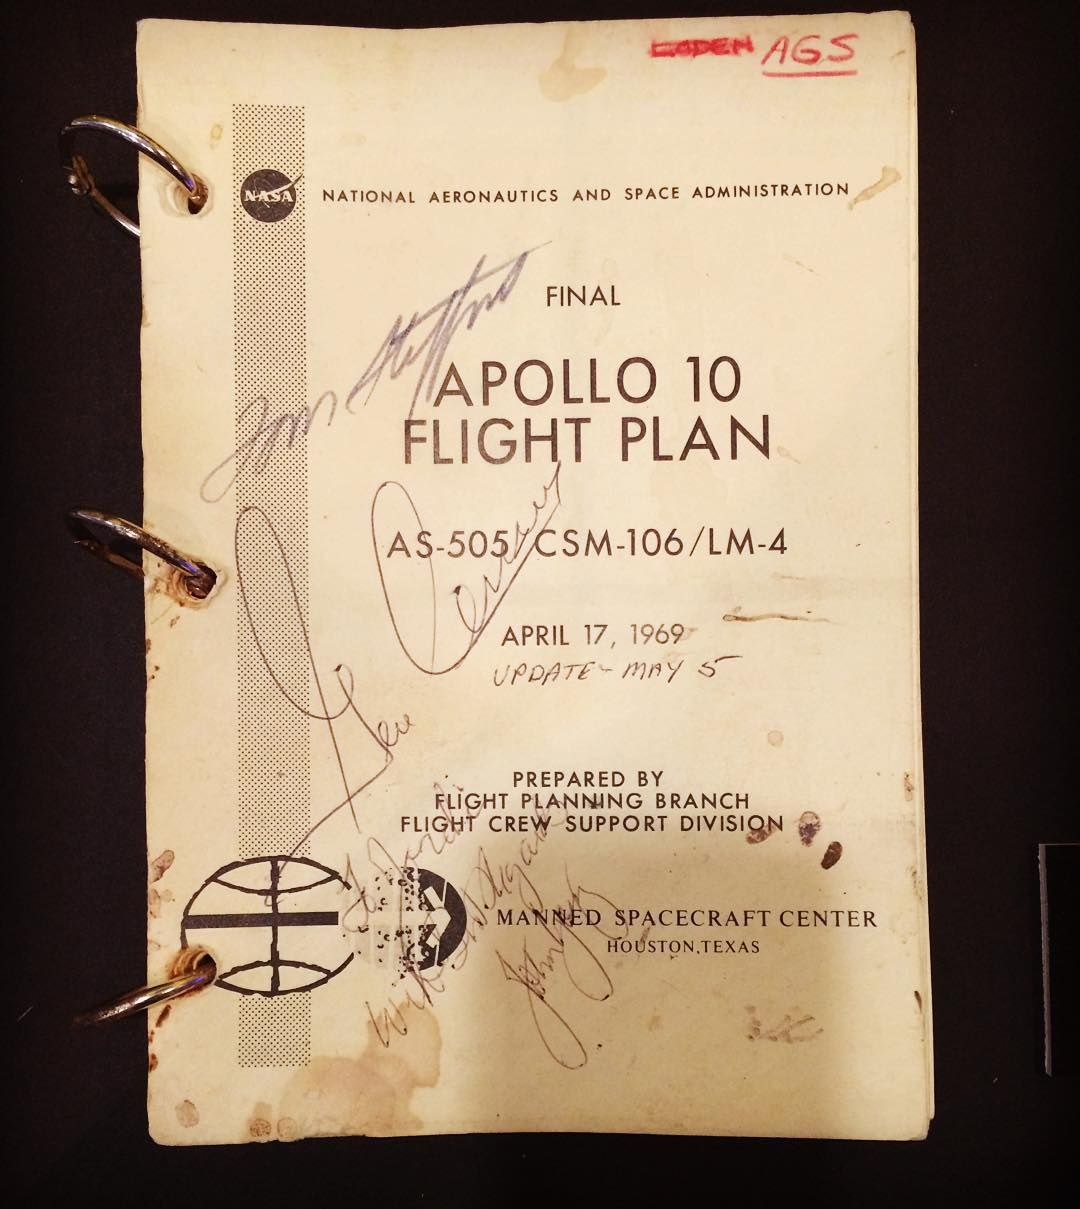 El plan de vuelo del APOLO 10 - 1969 @nasa